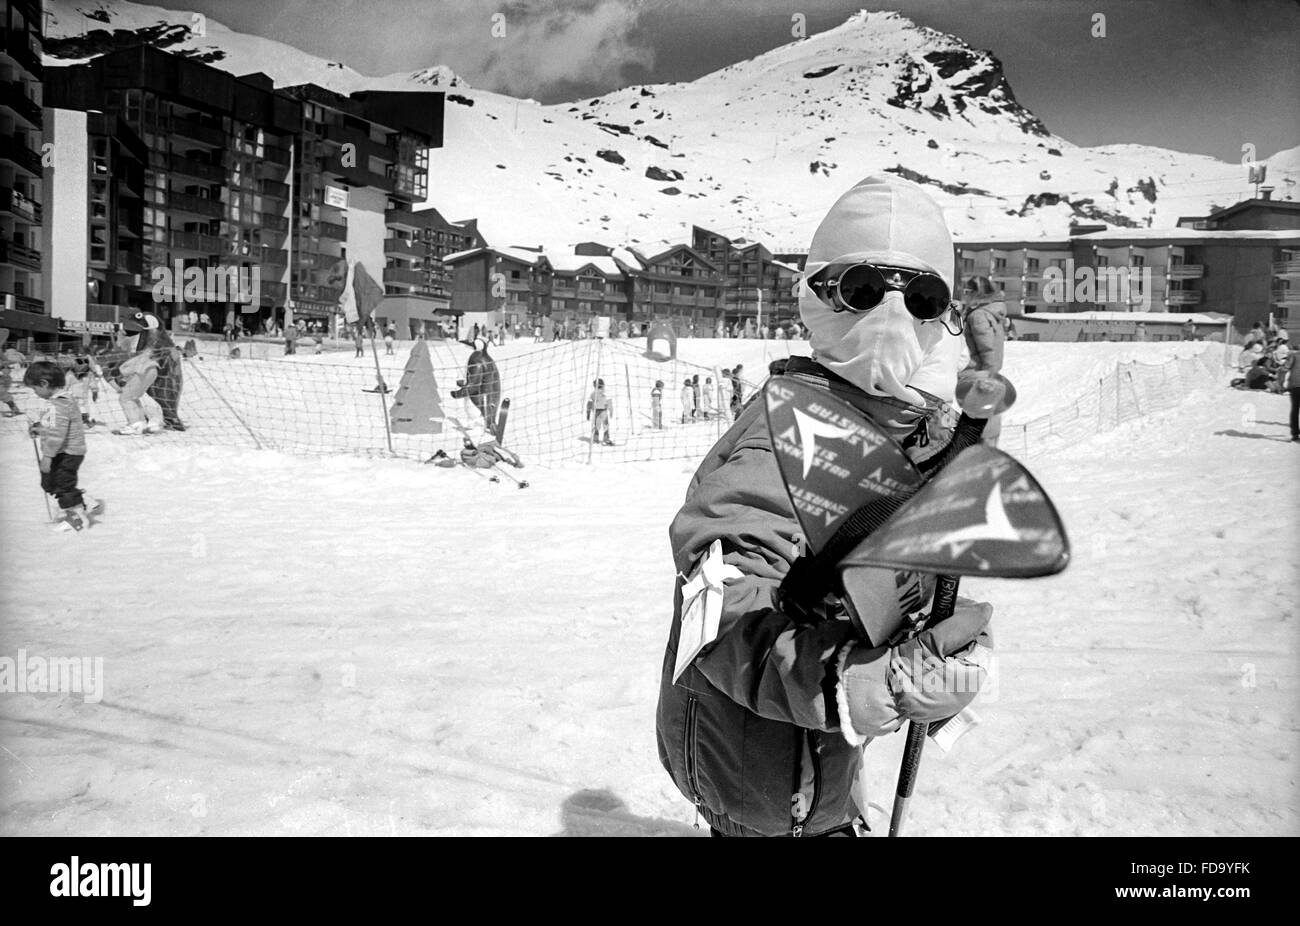 Young skier on the slopes of Val Thorens, in the Trois Vallees area of Savoie, France, early 1990s - Stock Image